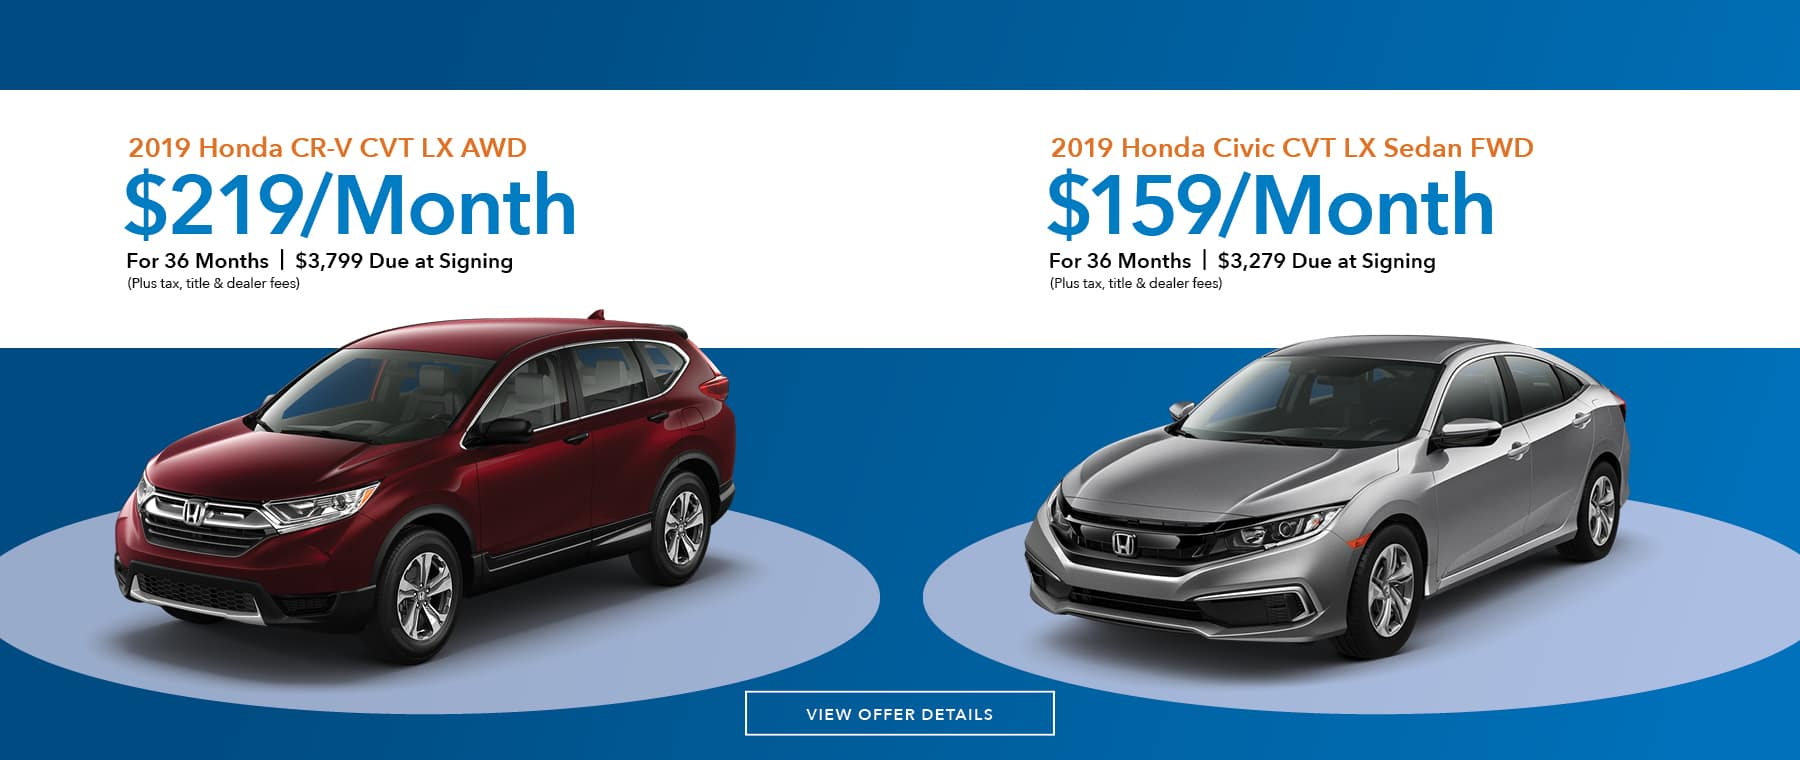 Honda Dealers Dayton Ohio >> Honda Dealers Dayton Ohio Best Upcoming Car Release 2020